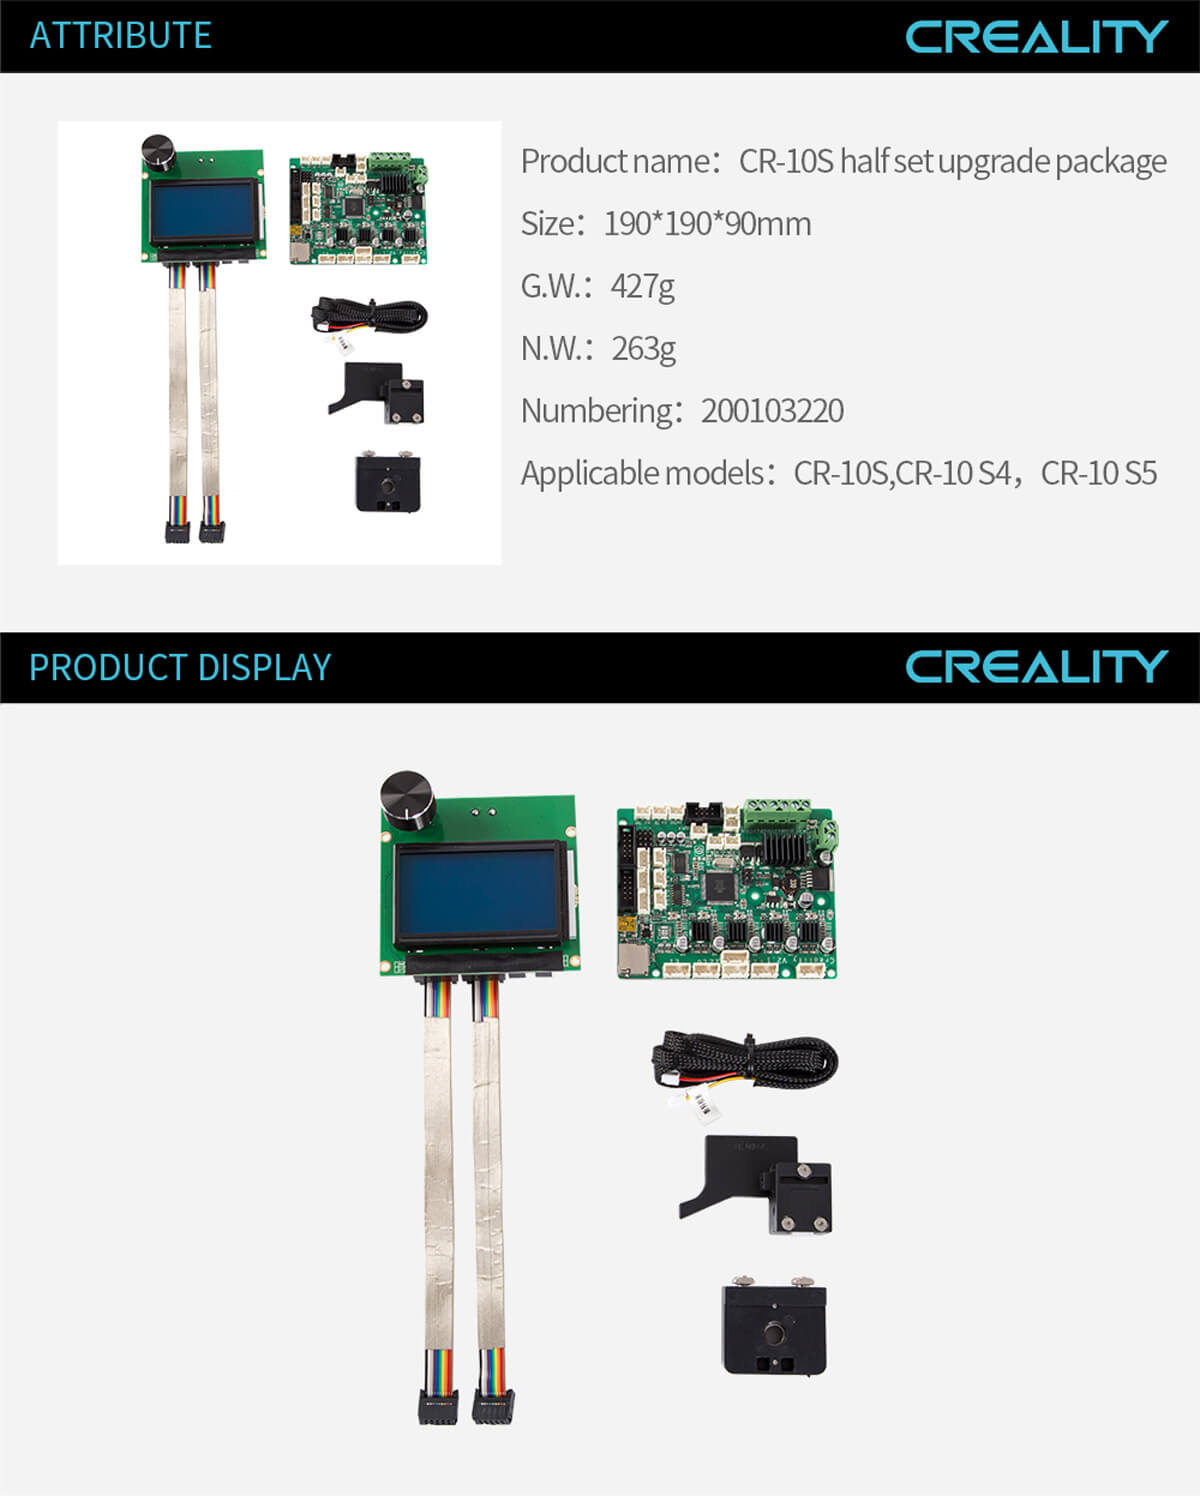 creality-3d-CR-10S-Half-Set-Upgrade-Package-11